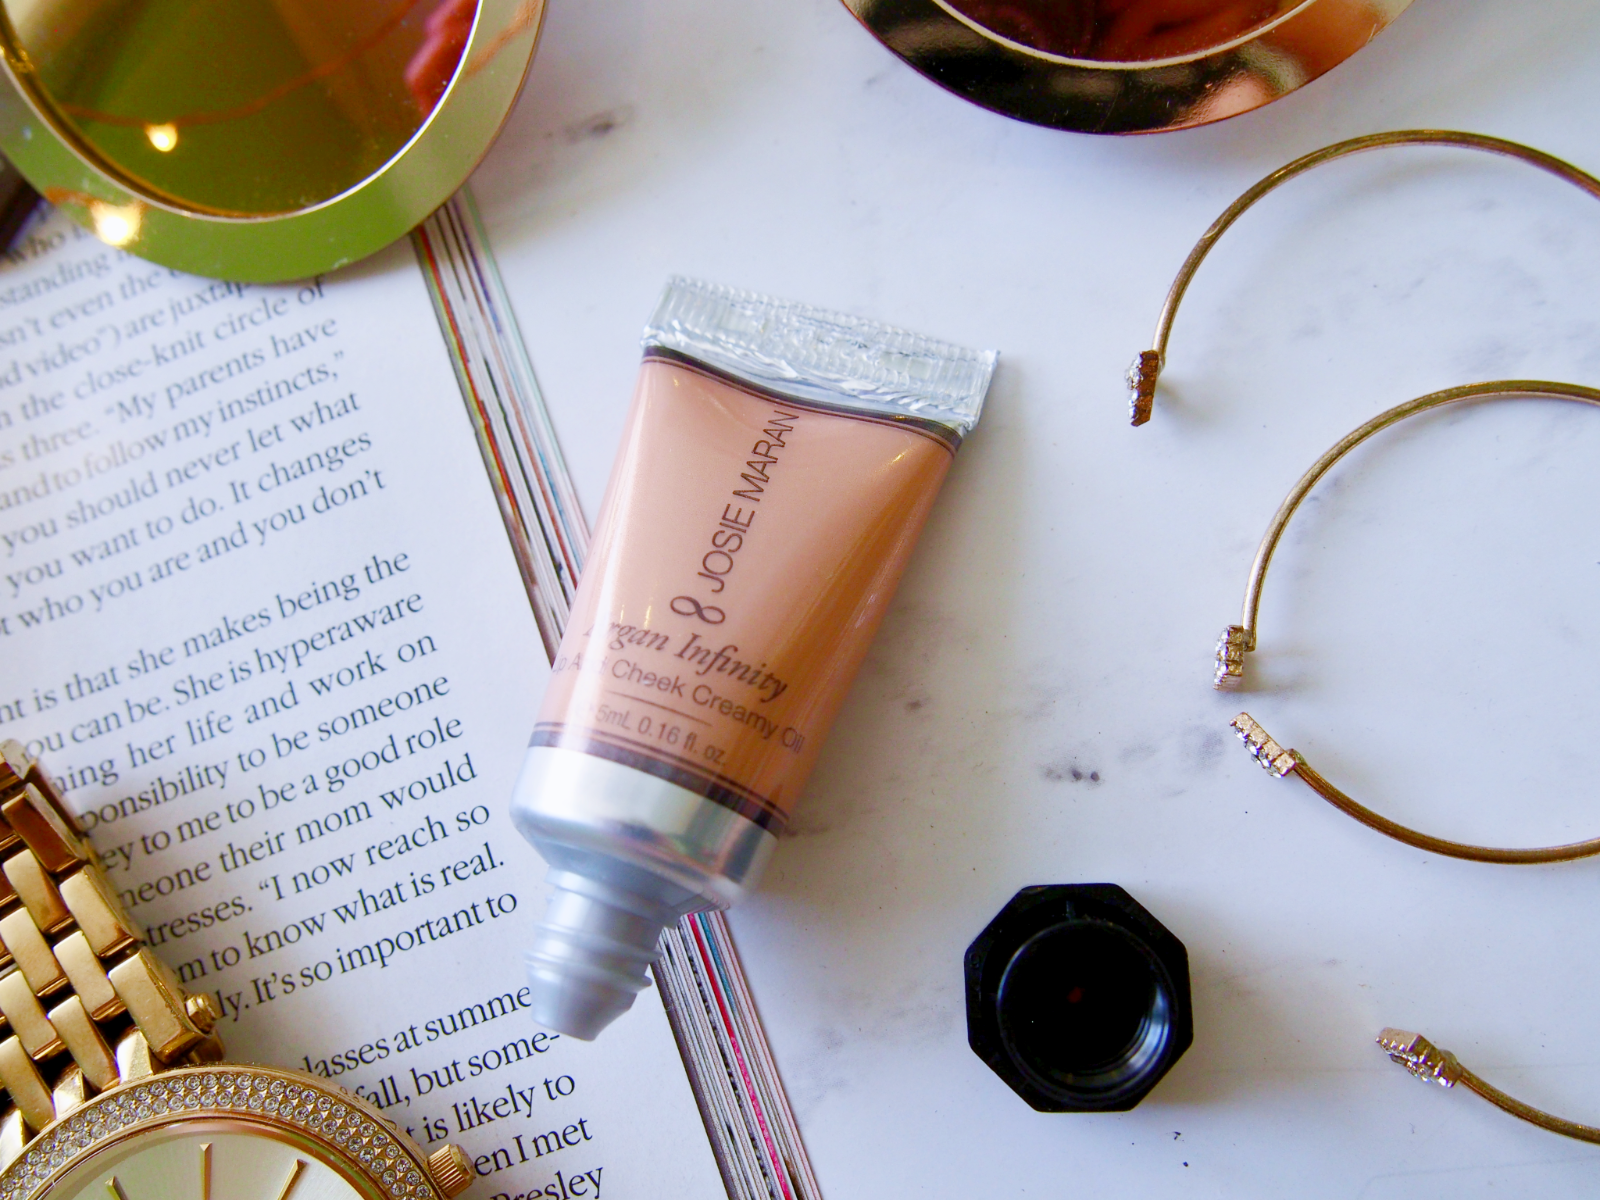 Josie Maran's Best and Brightest Argan Oil Essentials